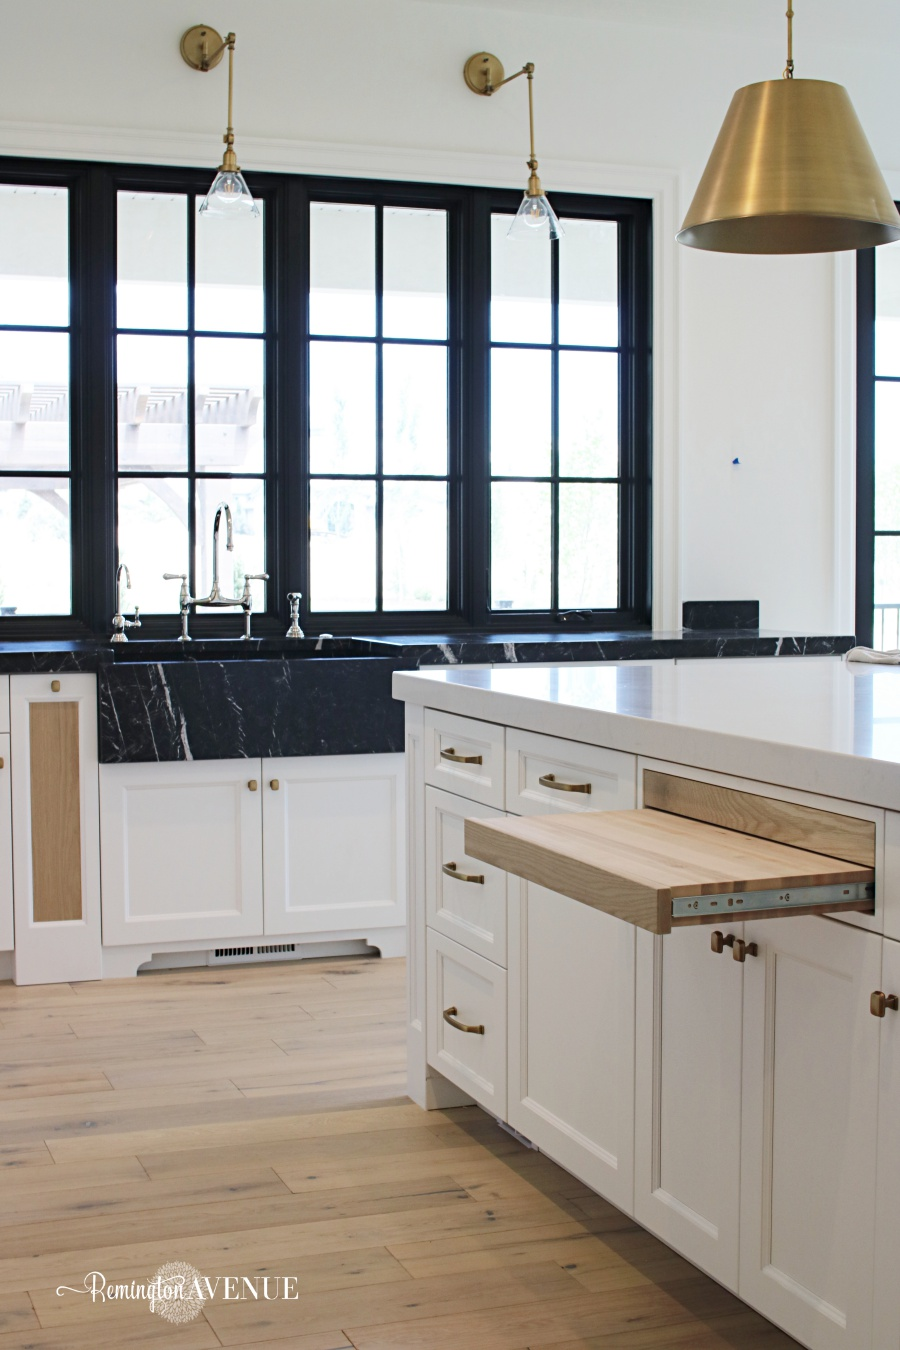 French Country Modern Kitchen with Black Marble Counters